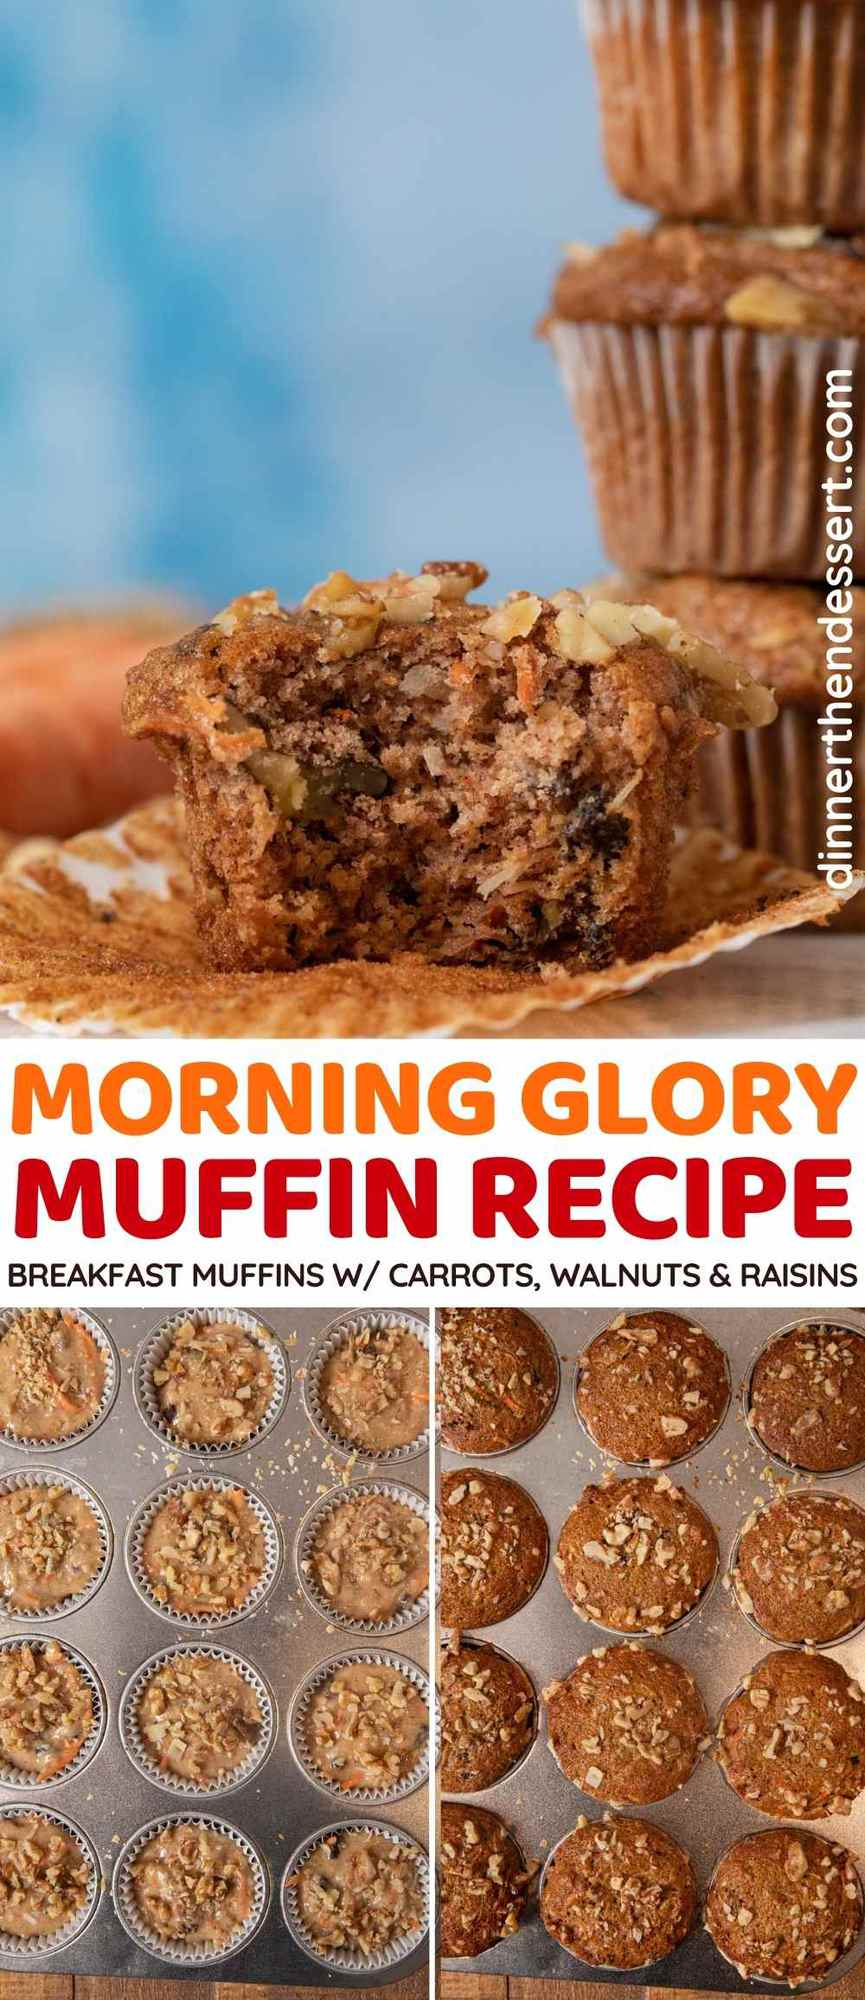 Morning Glory Muffins collage